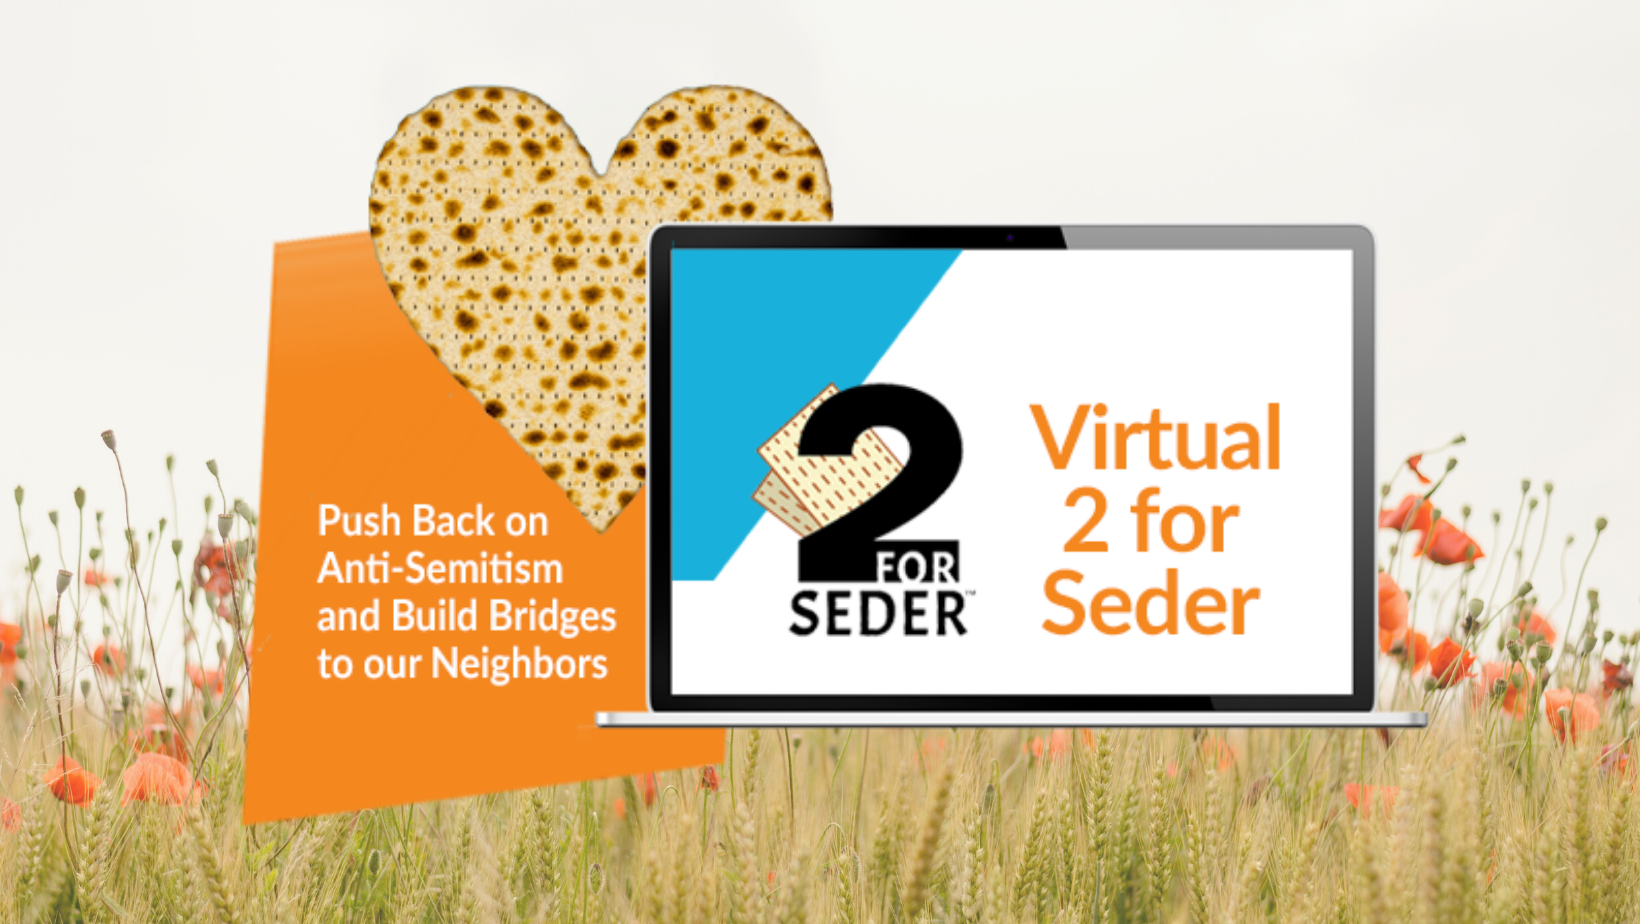 2 for Seder 2021 is coming!